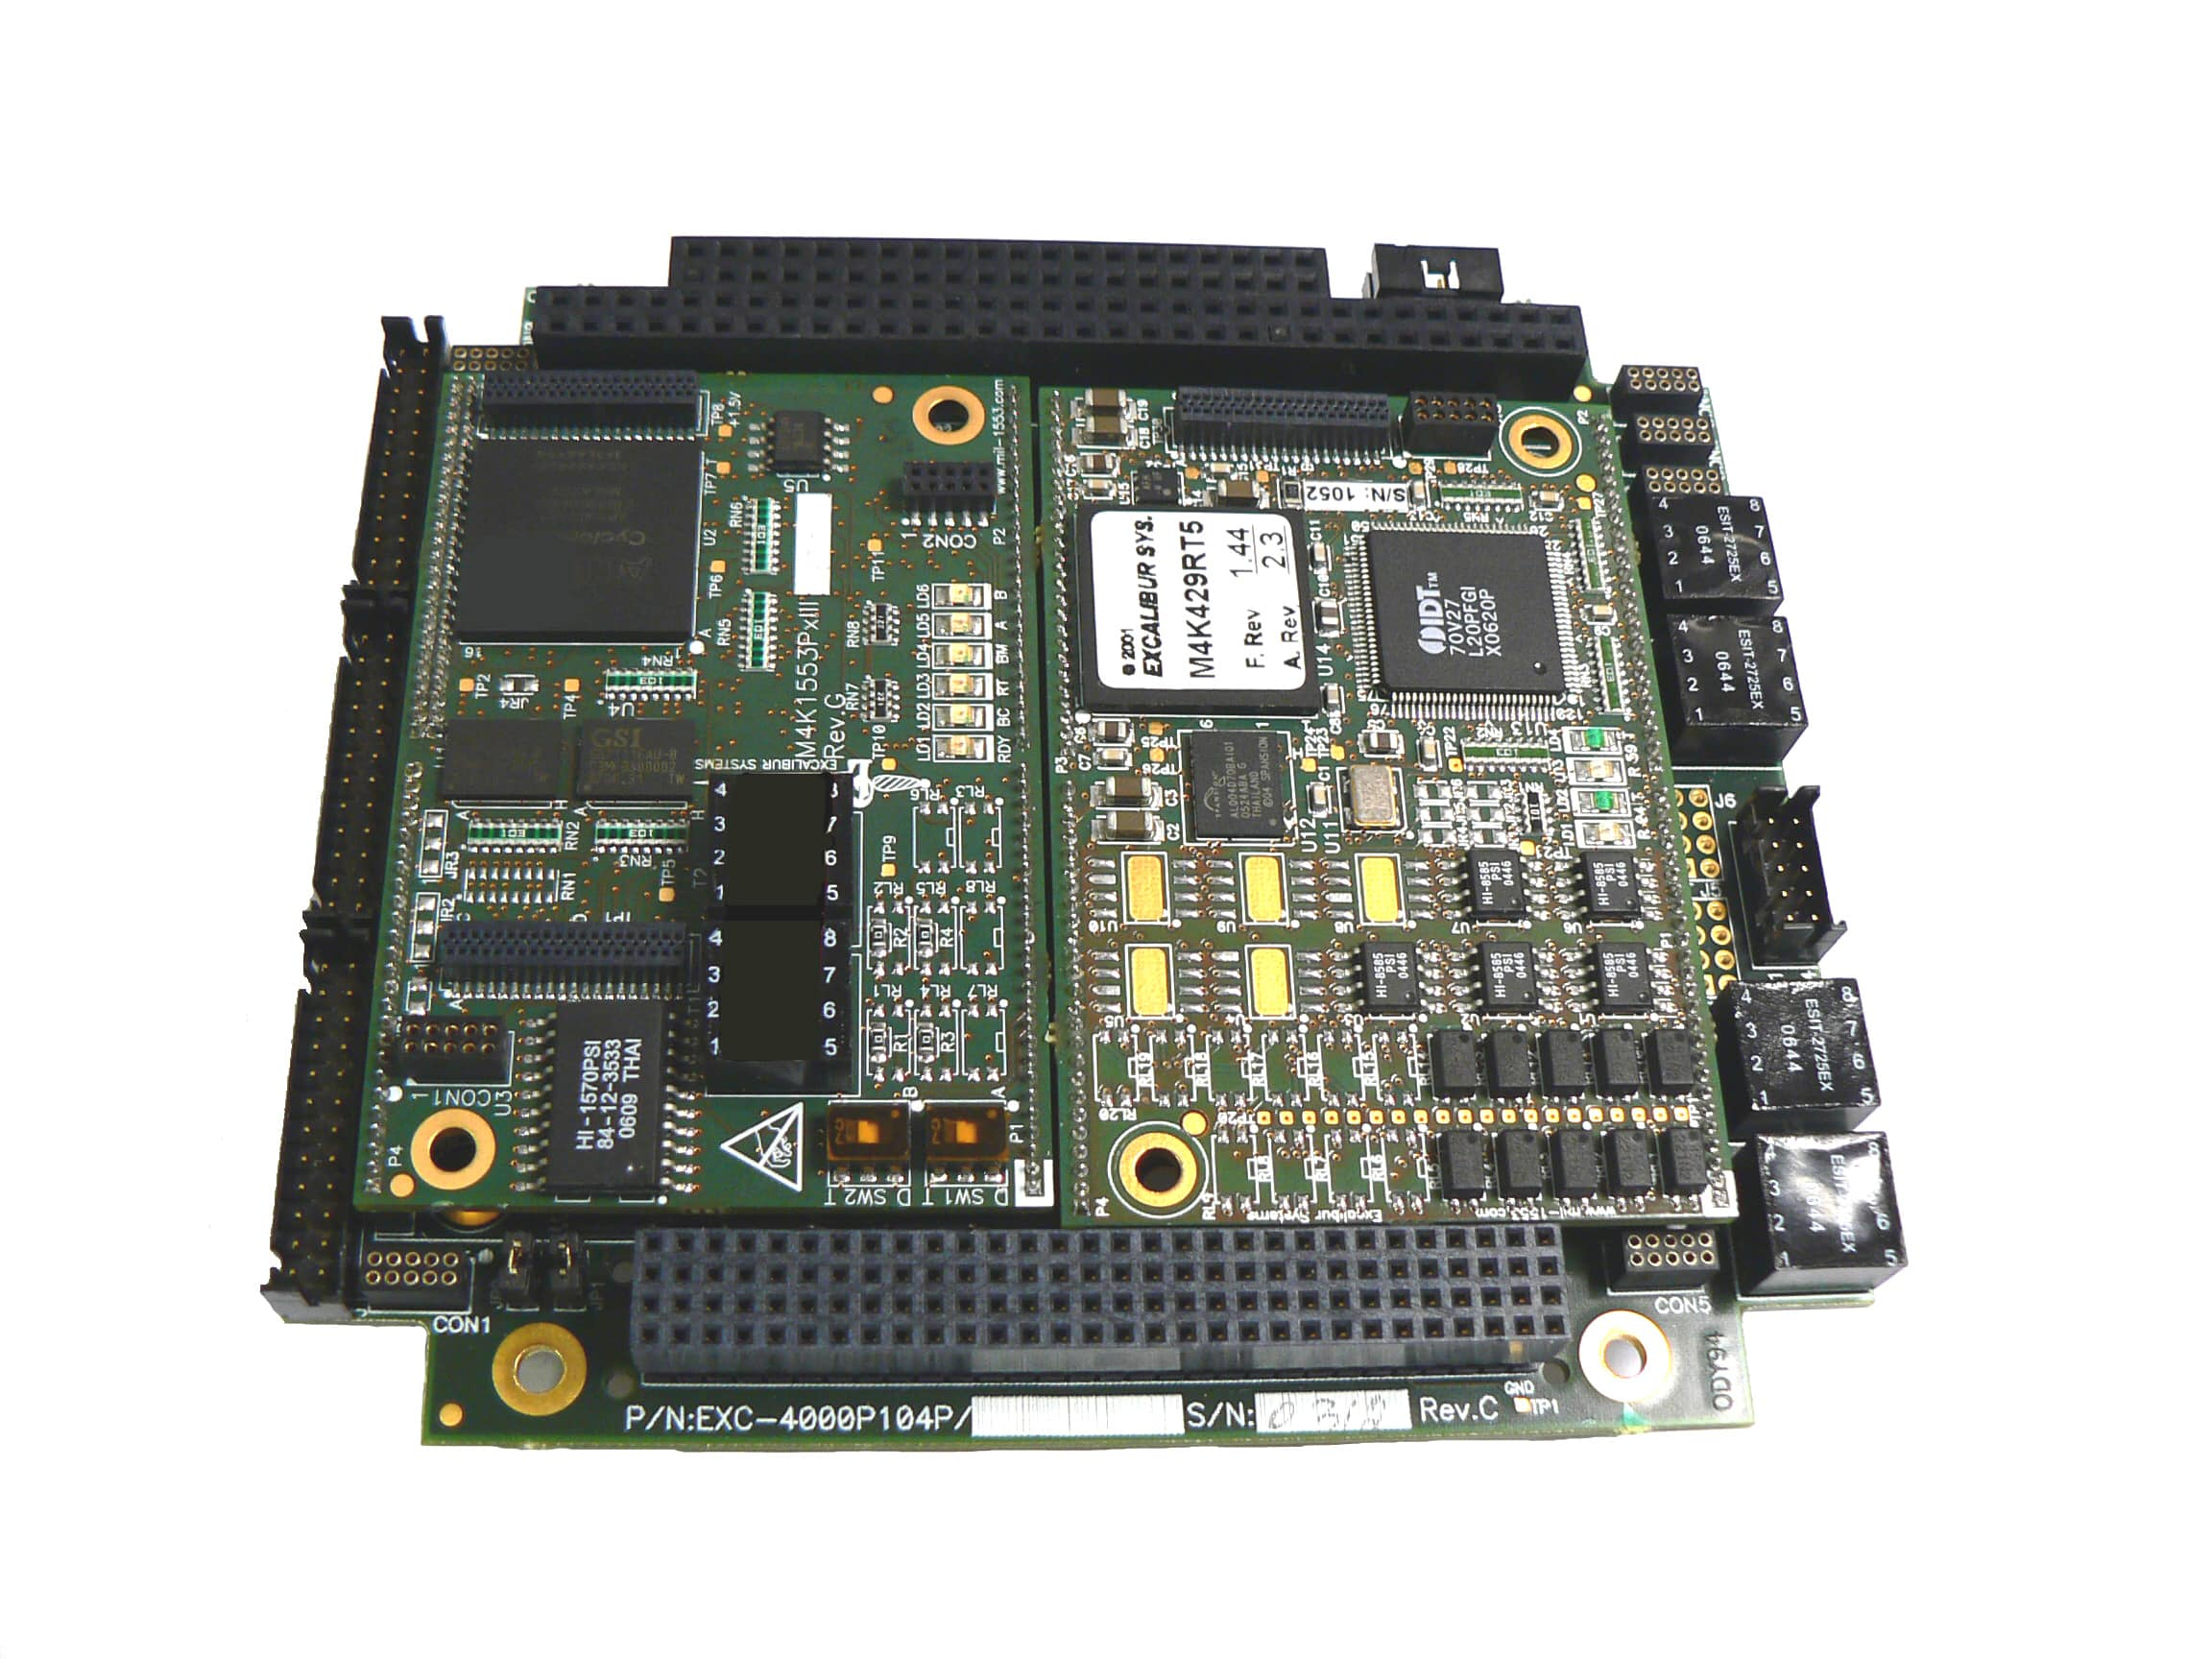 EXC-4000P104Plus/xx card & M4K1553Px(S) module - test and simulation board for PC/104 Plus systems